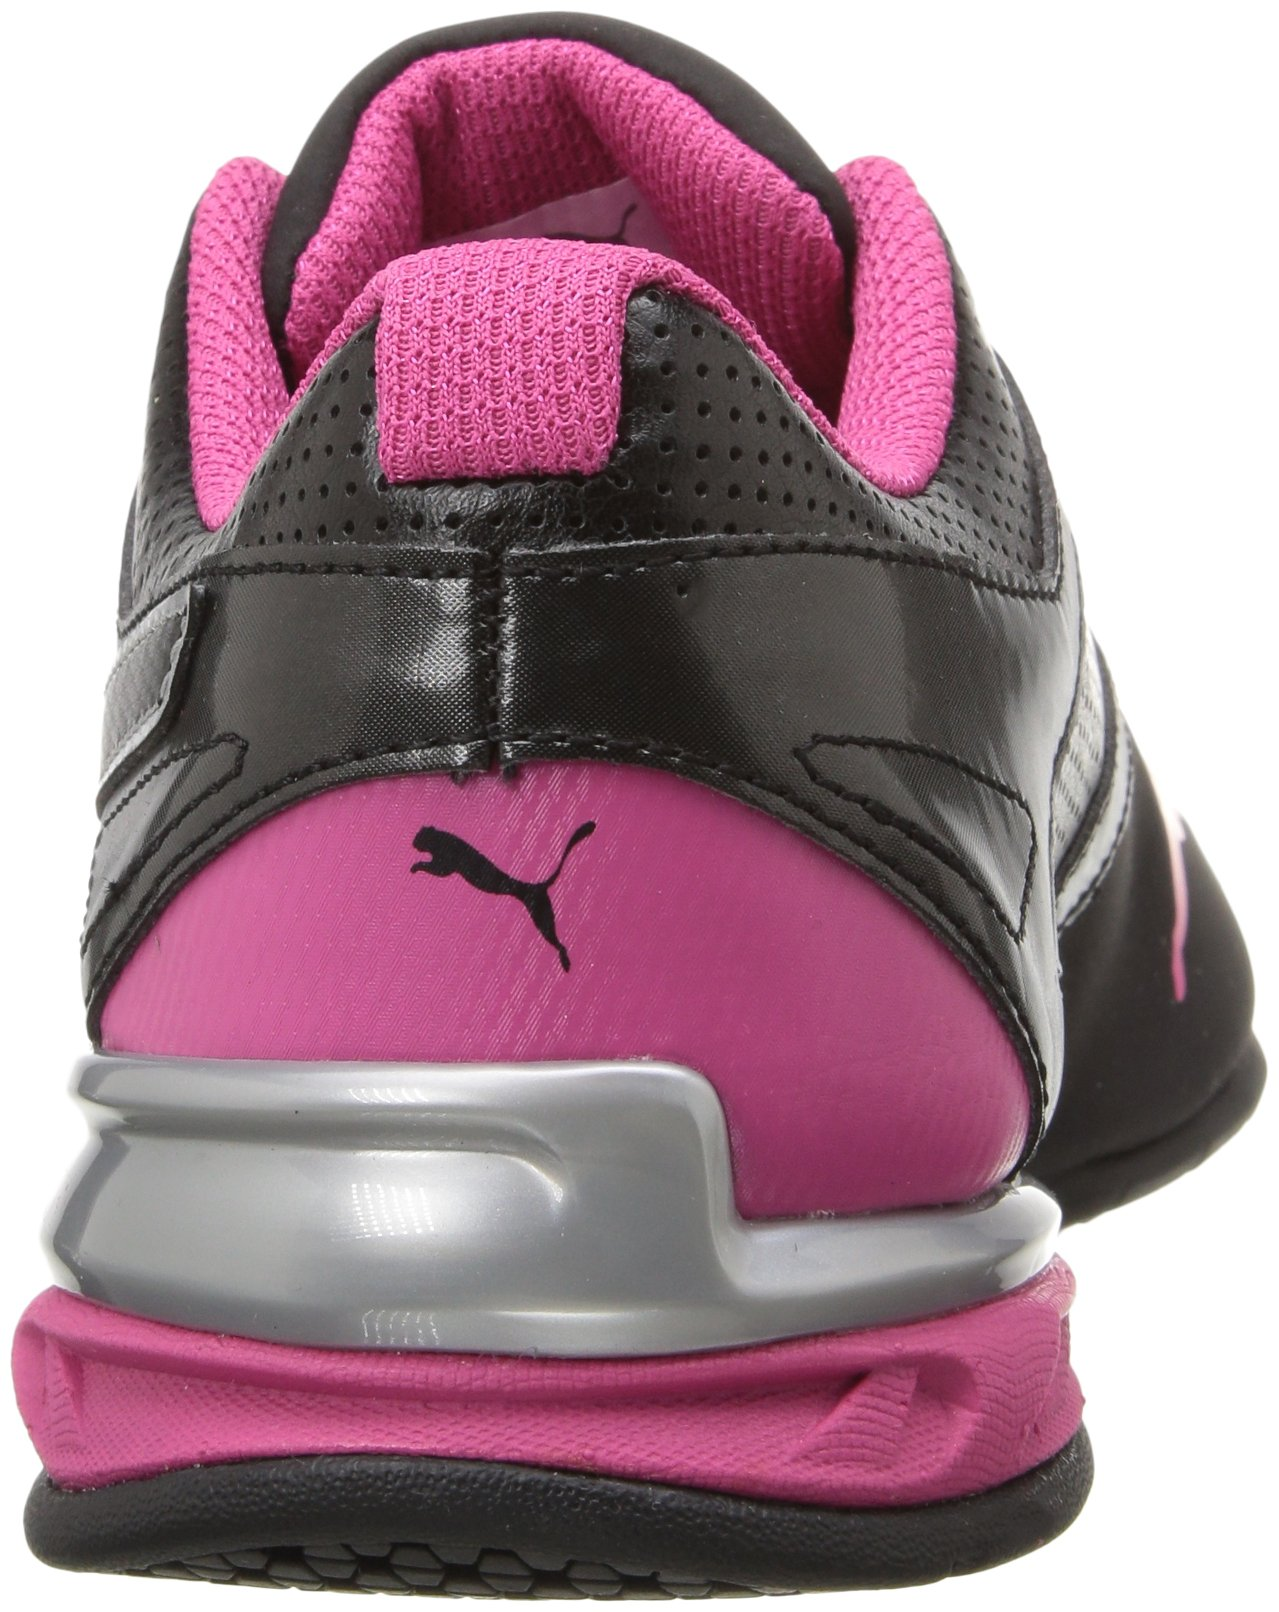 PUMA Women's Tazon 6 WN's fm Cross-Trainer Shoe Black Silver/Beetroot Purple, 7 M US by PUMA (Image #2)